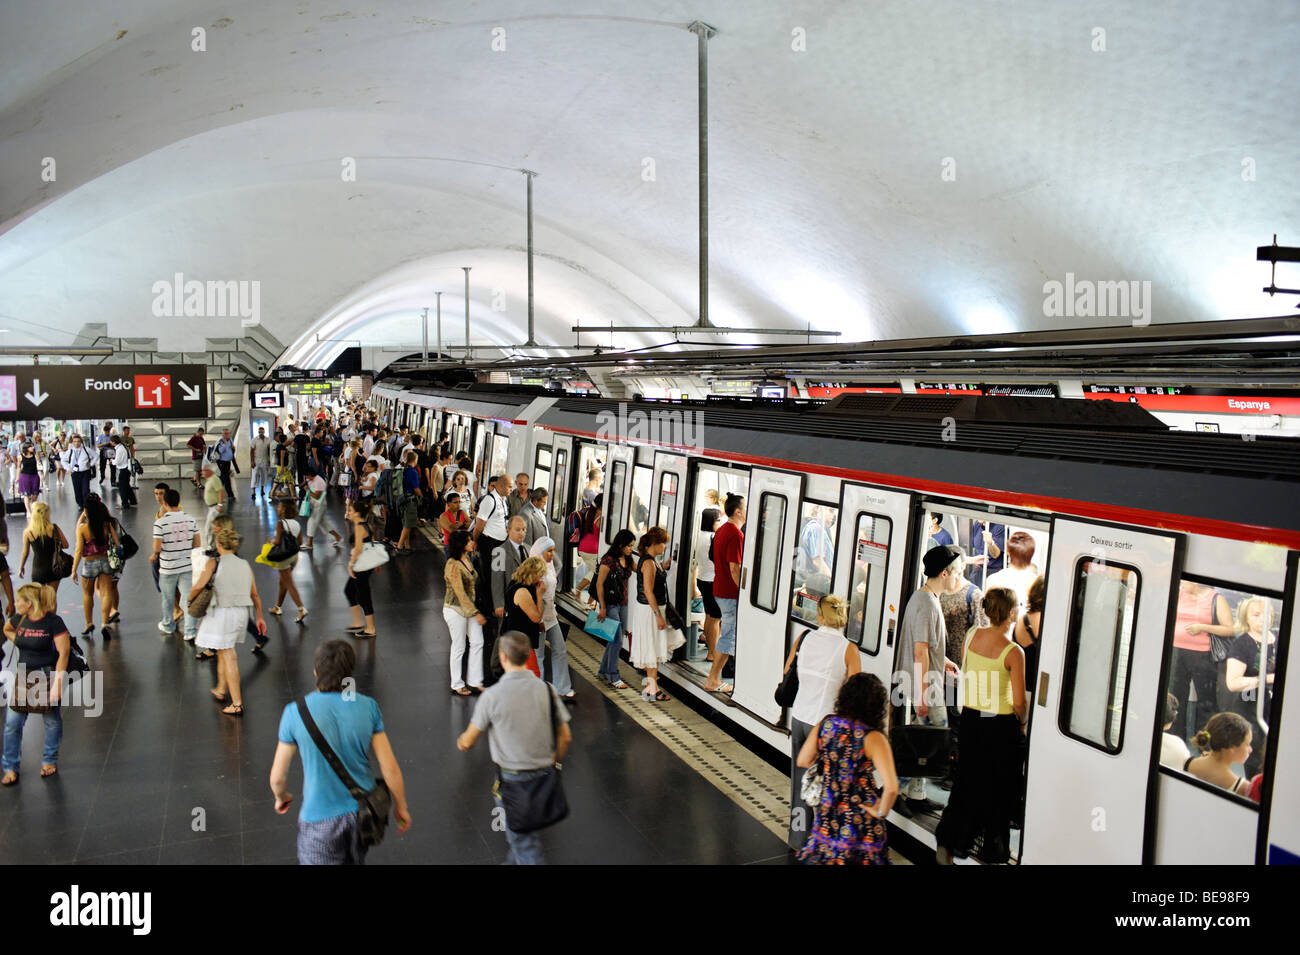 People boarding train at busy metro station. Barcelona. Spain - Stock Image